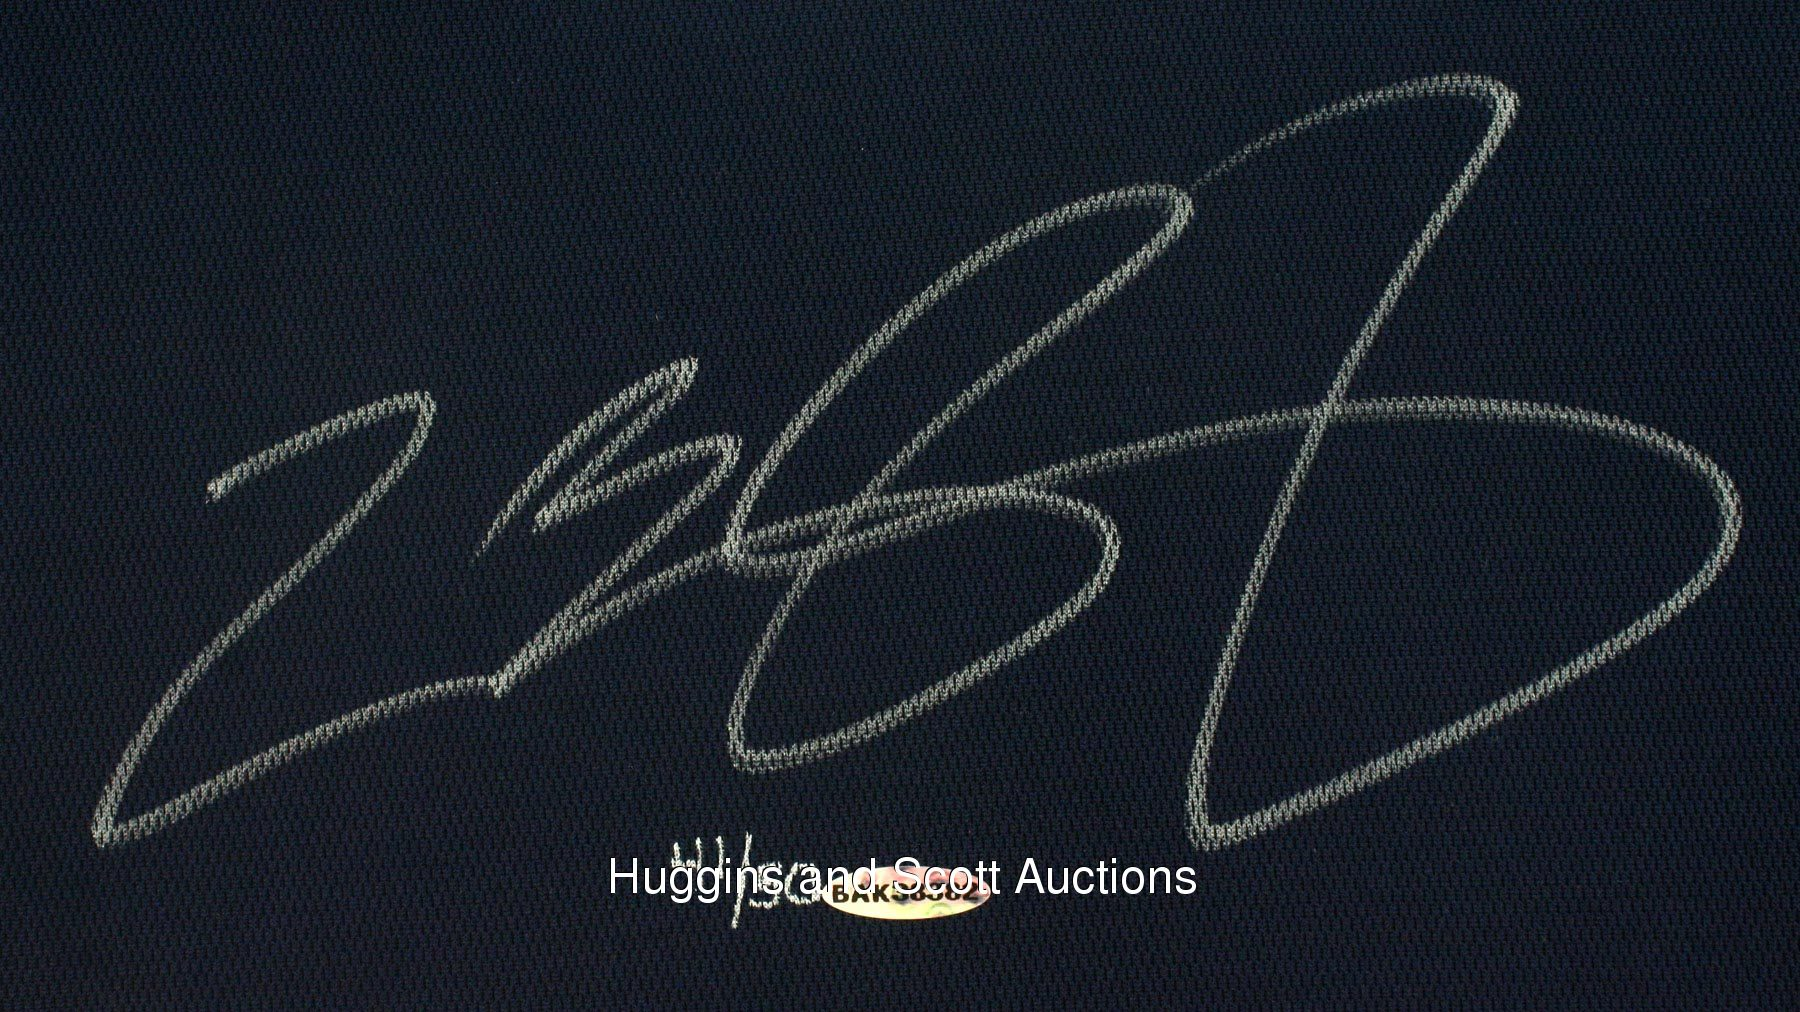 lebron james autograph - photo #18